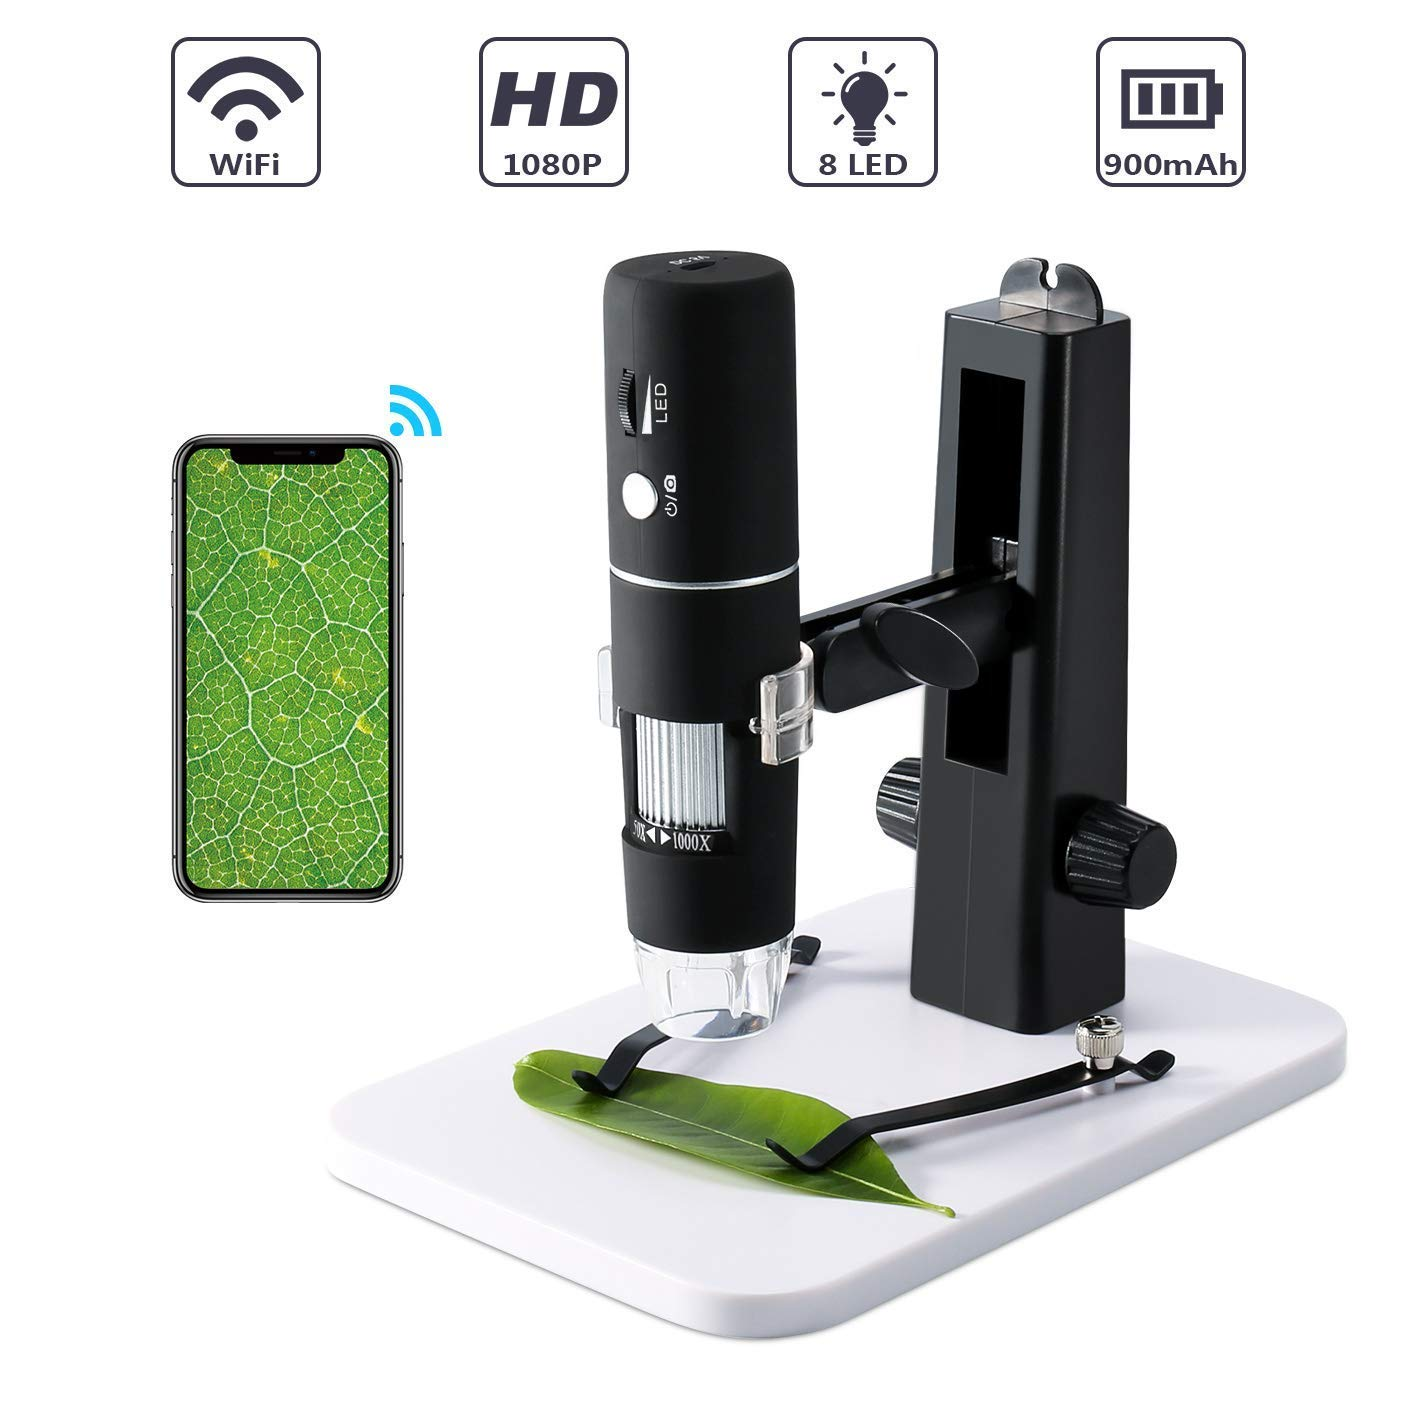 Wireless Digital Microscope,ROTEK WiFi USB Microscope Camera 50x and 1000x Zoom 1080P with Professional Lift Stand,Pocket Microscope with 8 LED Light Compatible for iPhone Android, iPad Windows MAC by ROTEK